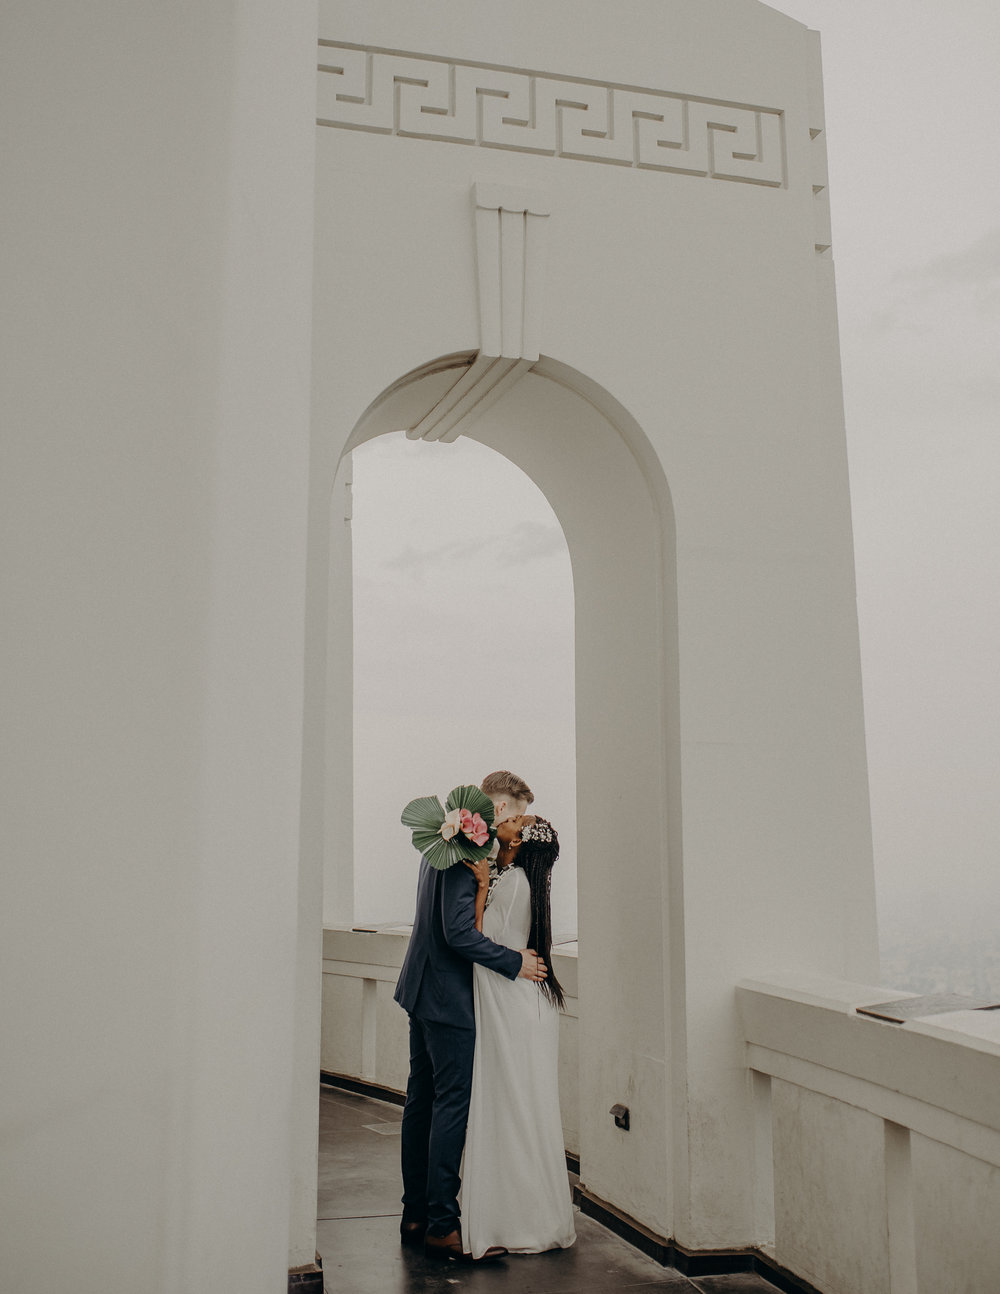 Los Angeles Wedding Photographer - Griffith Observatory Elopement - Long Beach wedding photo - IsaiahAndTaylor.com-043.jpg